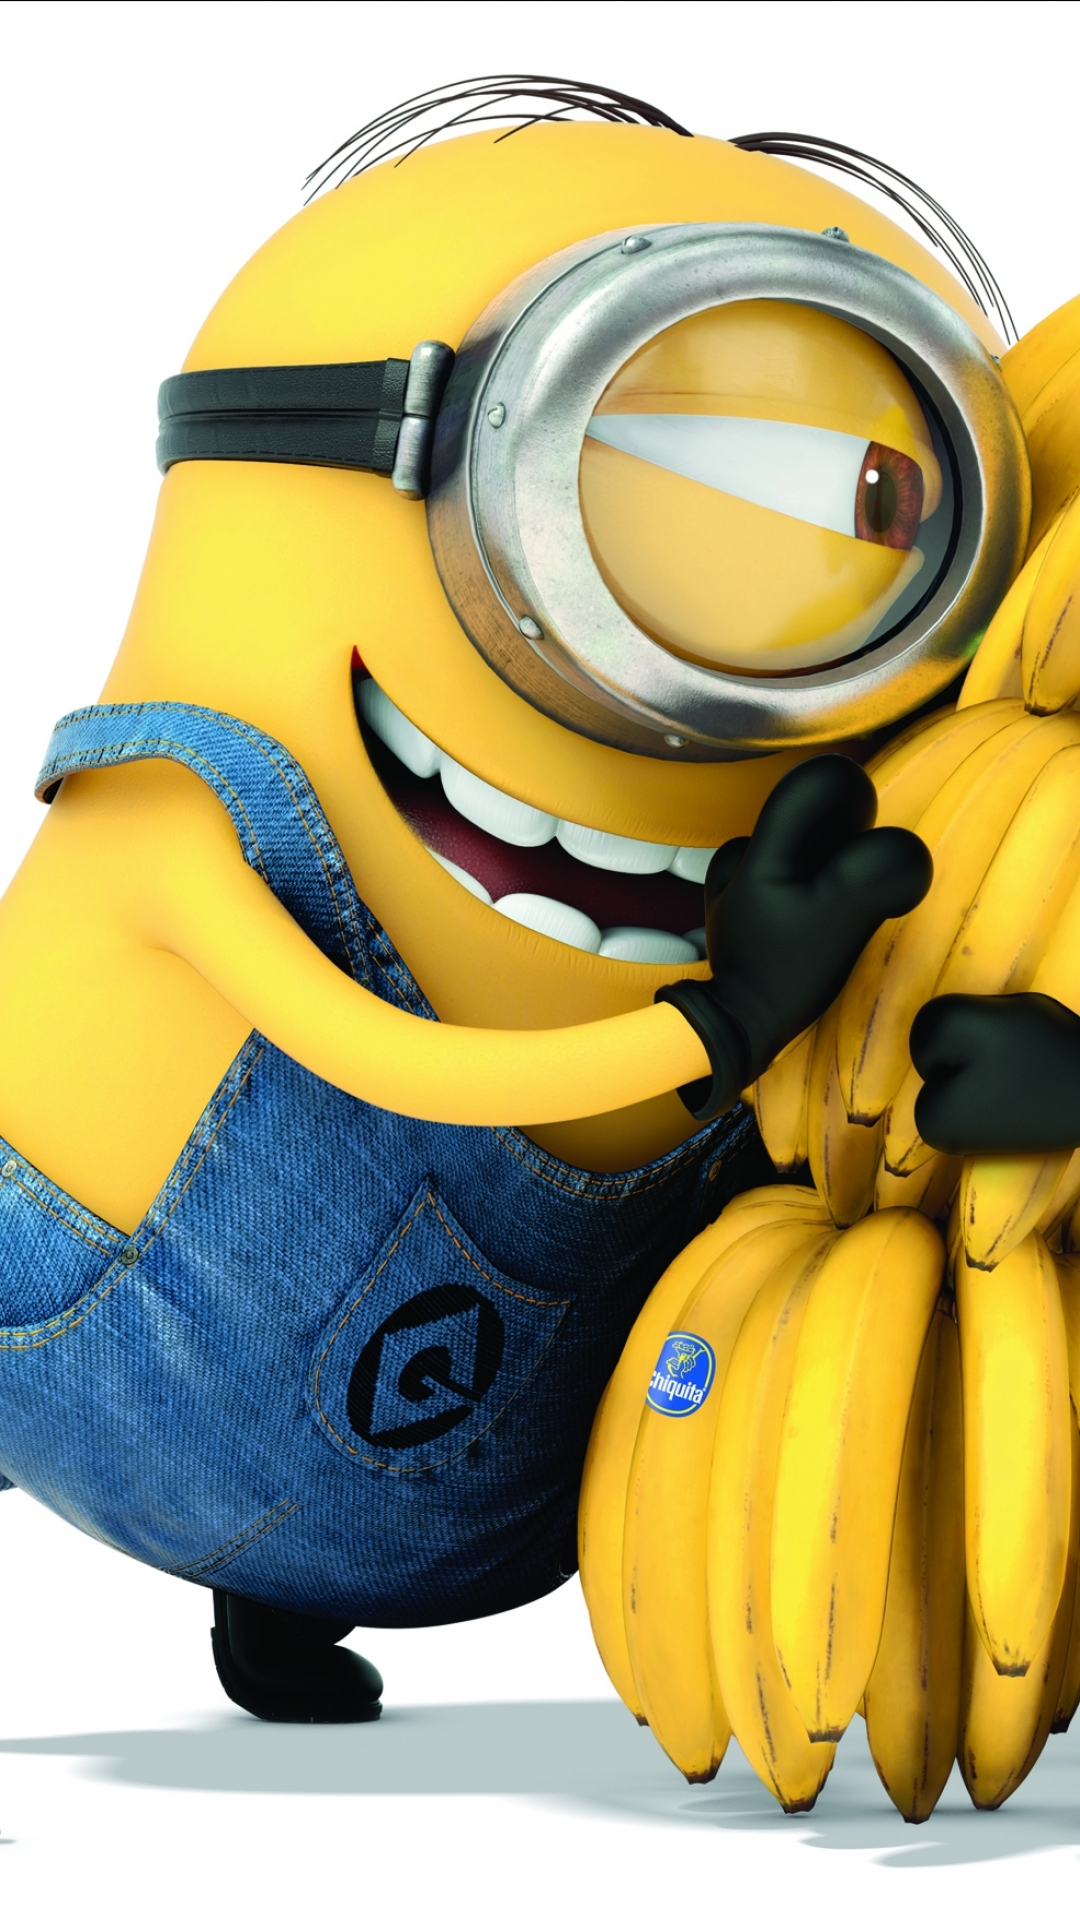 Moviedespicable me 2 1080x1920 wallpaper id 51237 mobile abyss movie despicable me 2 1080x1920 mobile wallpaper voltagebd Gallery